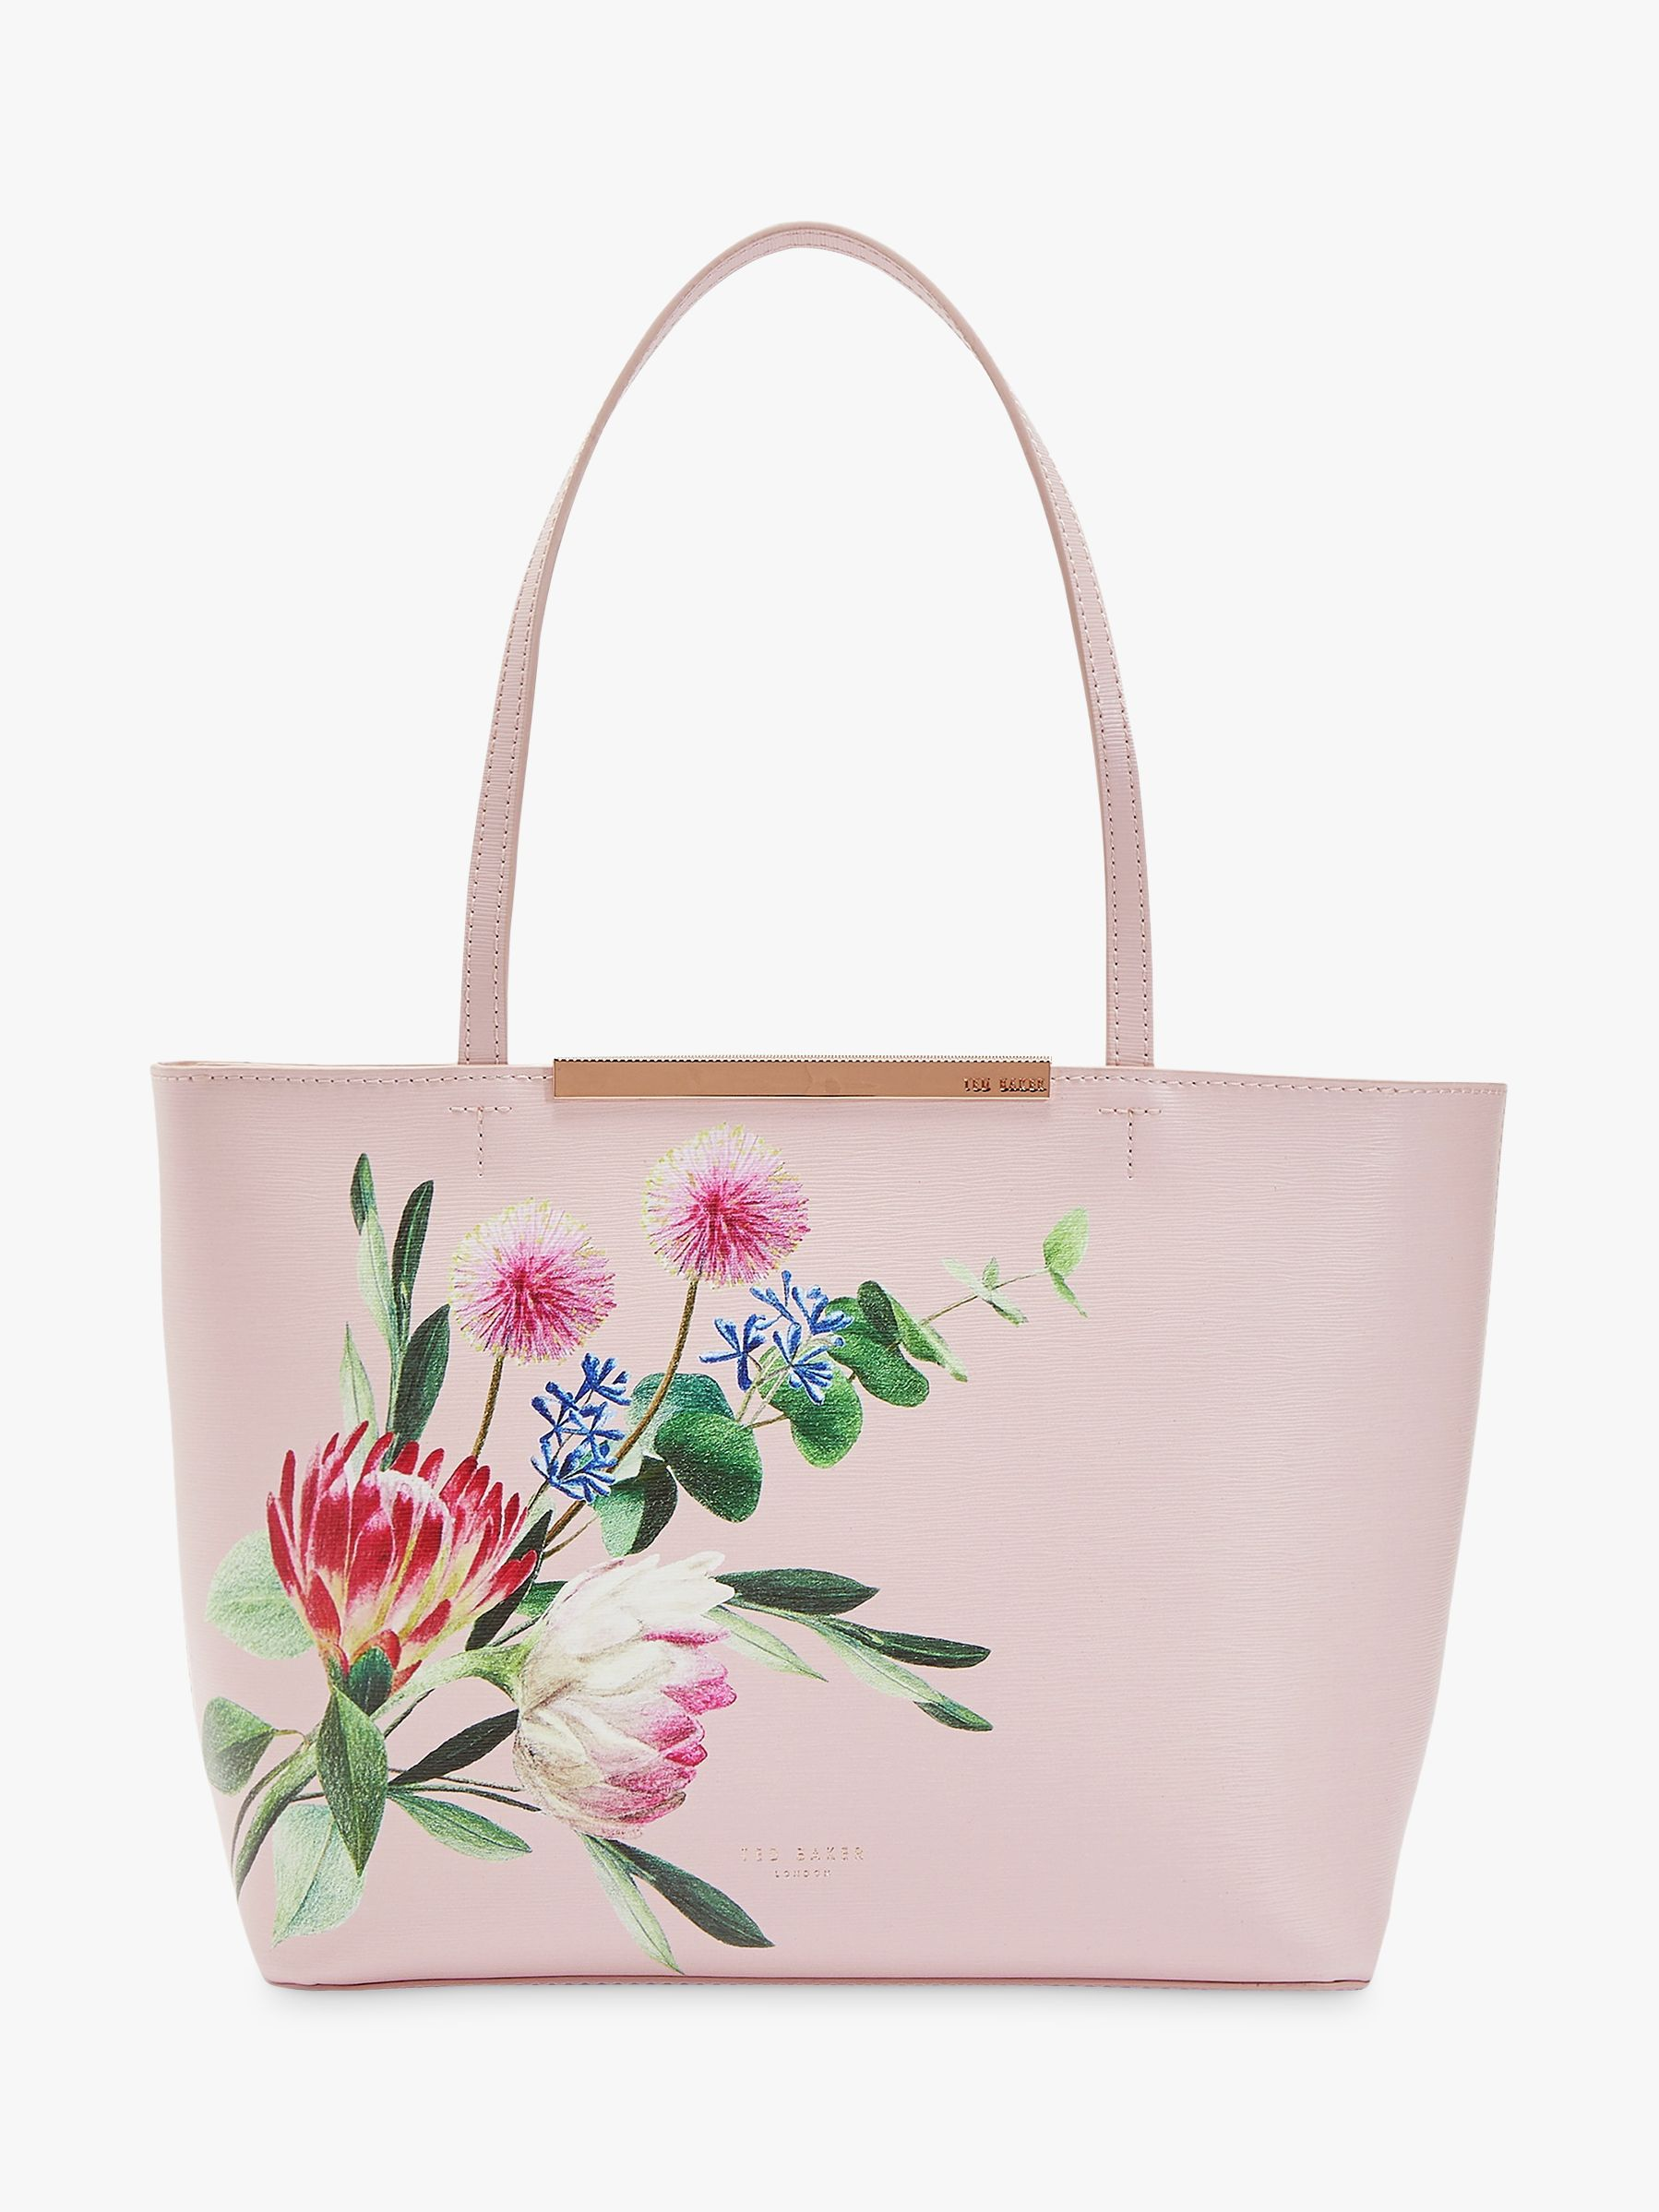 38f5656e0943a Ted Baker Abiiey Mini Shopper Bag, Light Pink at John Lewis & Partners